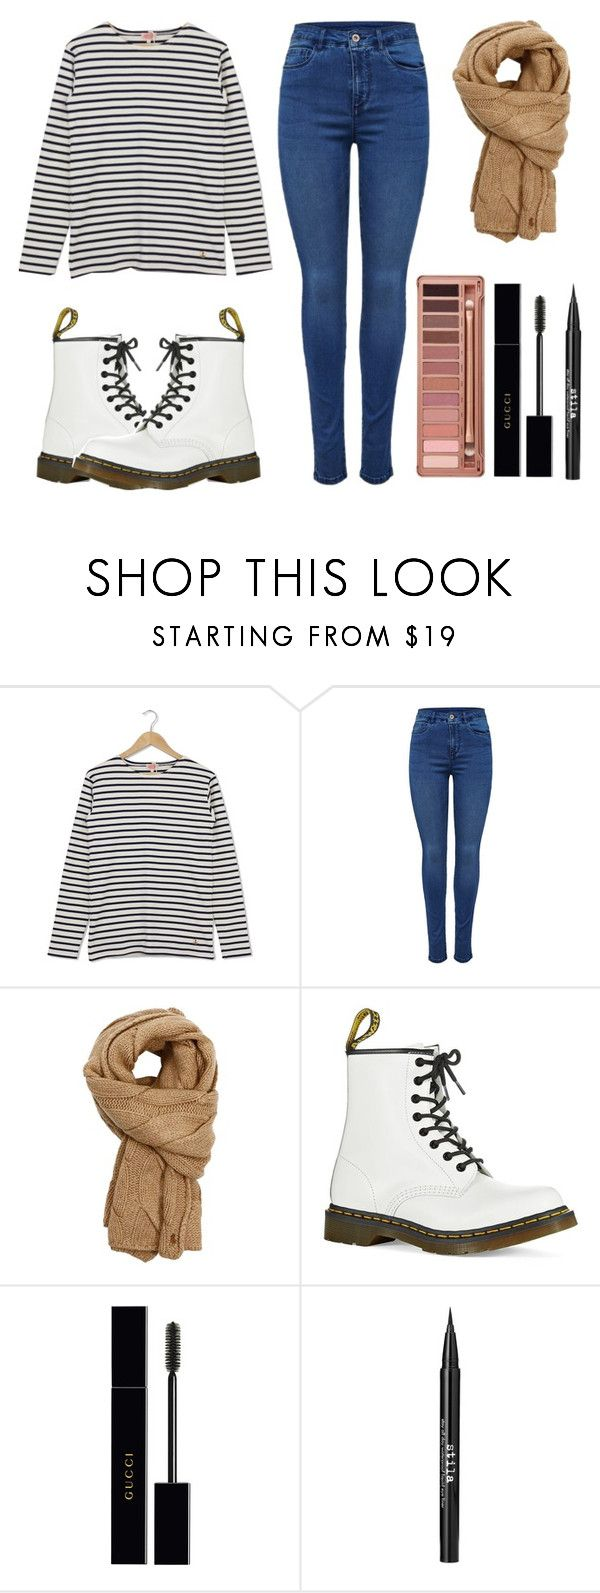 """Simple Fall Fashion"" by moriah-fashion ❤ liked on Polyvore featuring Armor-Lux, Polo Ralph Lauren, Dr. Martens, Urban Decay, Gucci and Stila"